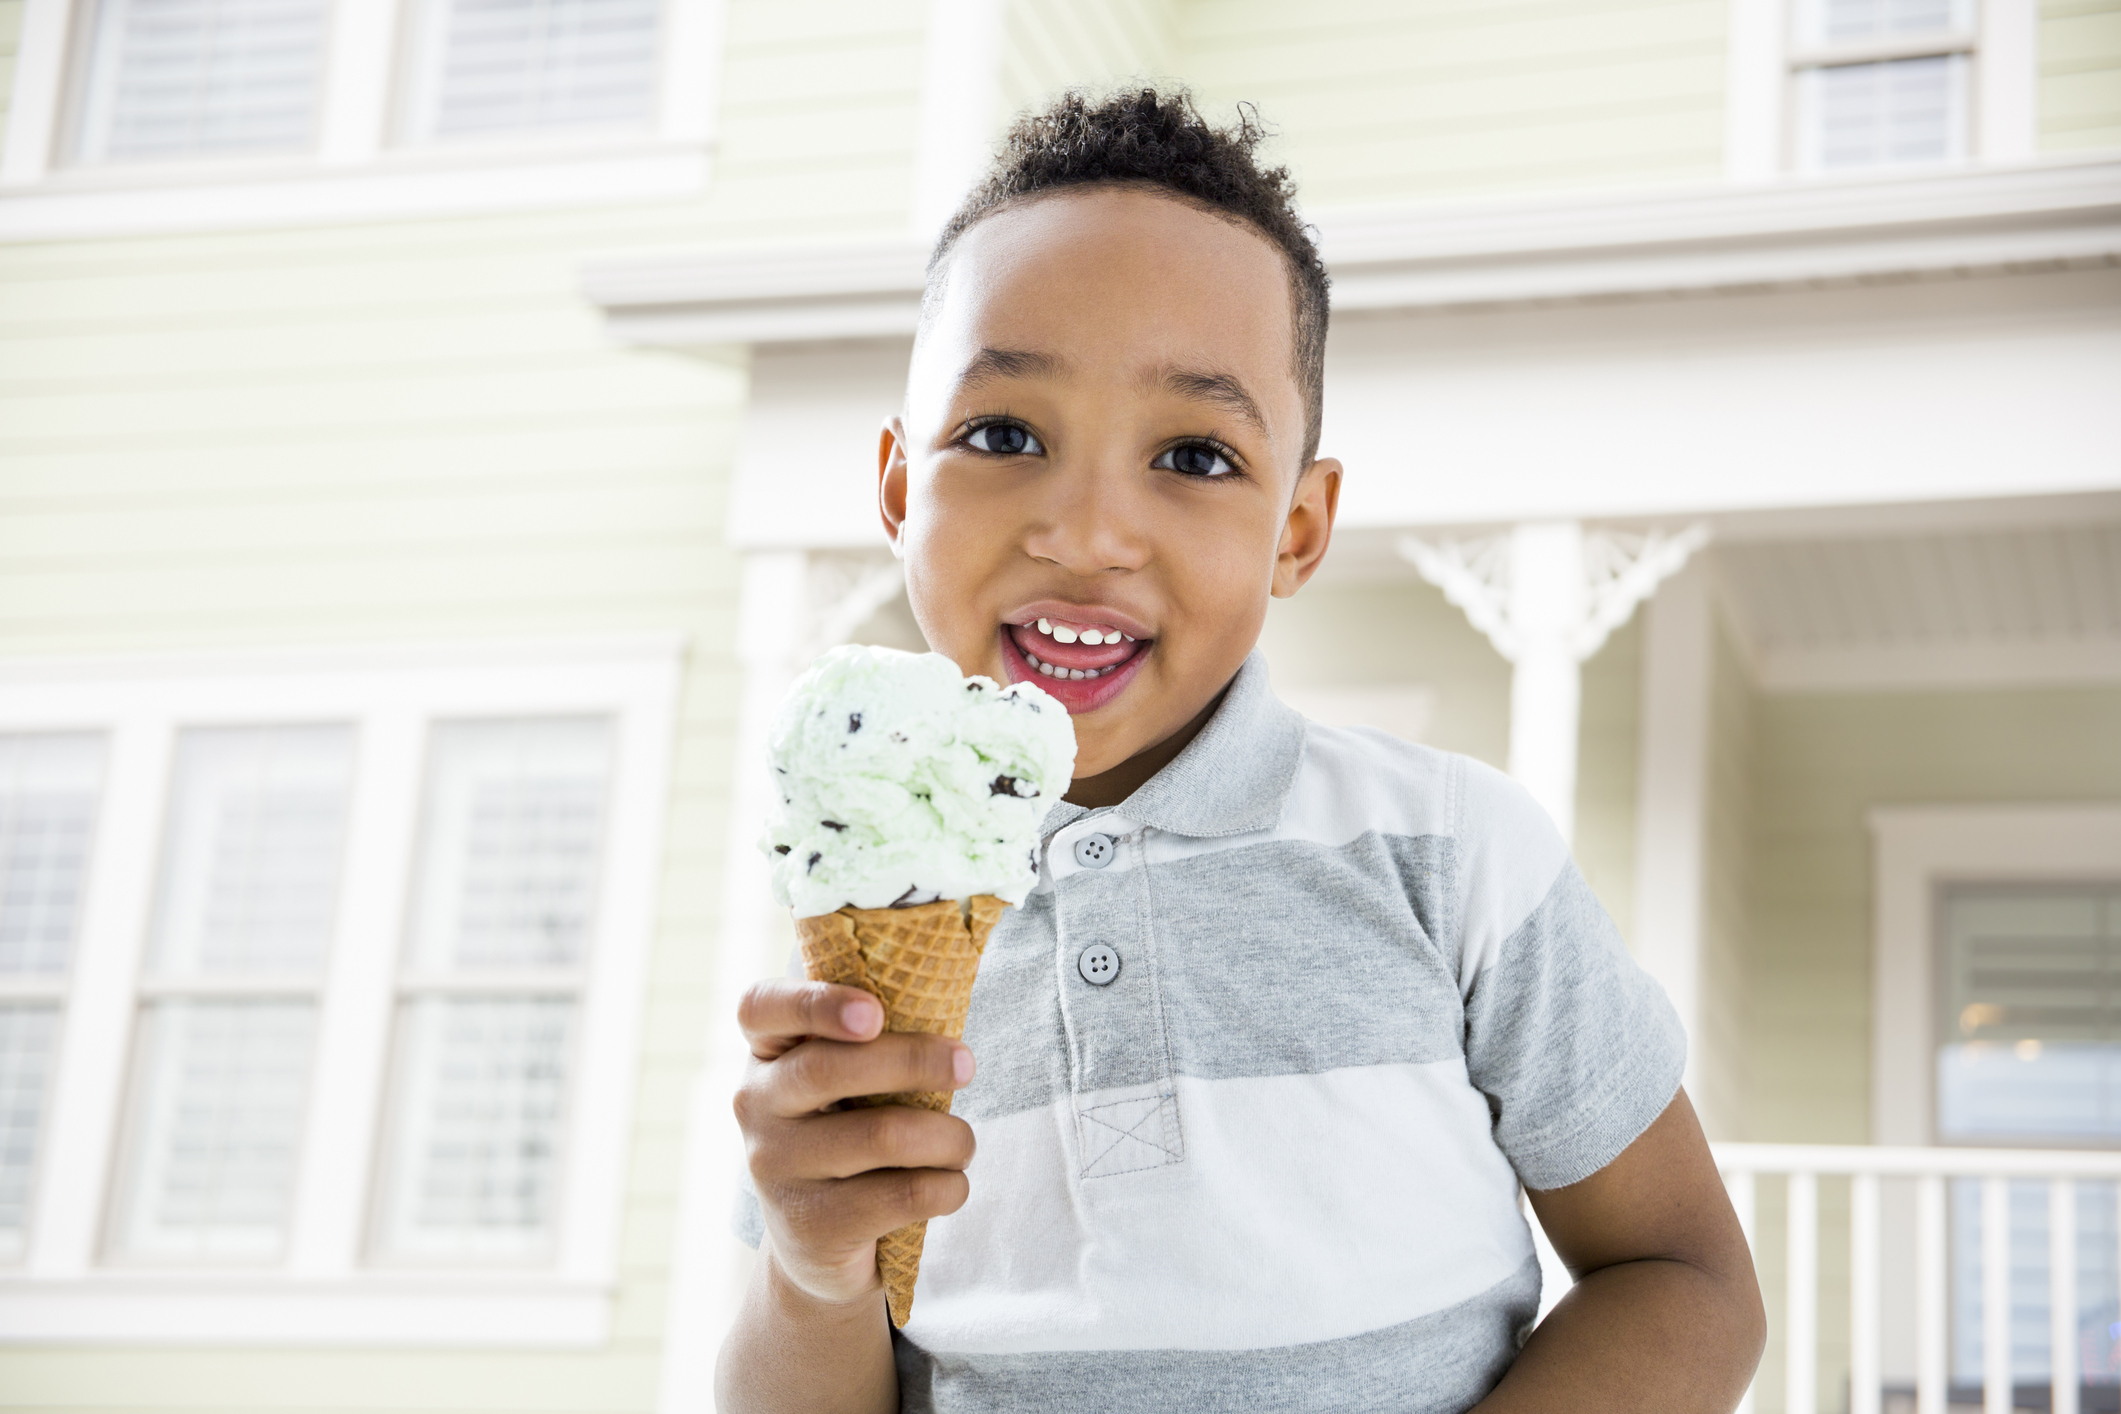 Mixed race boy eating ice cream cone in backyard